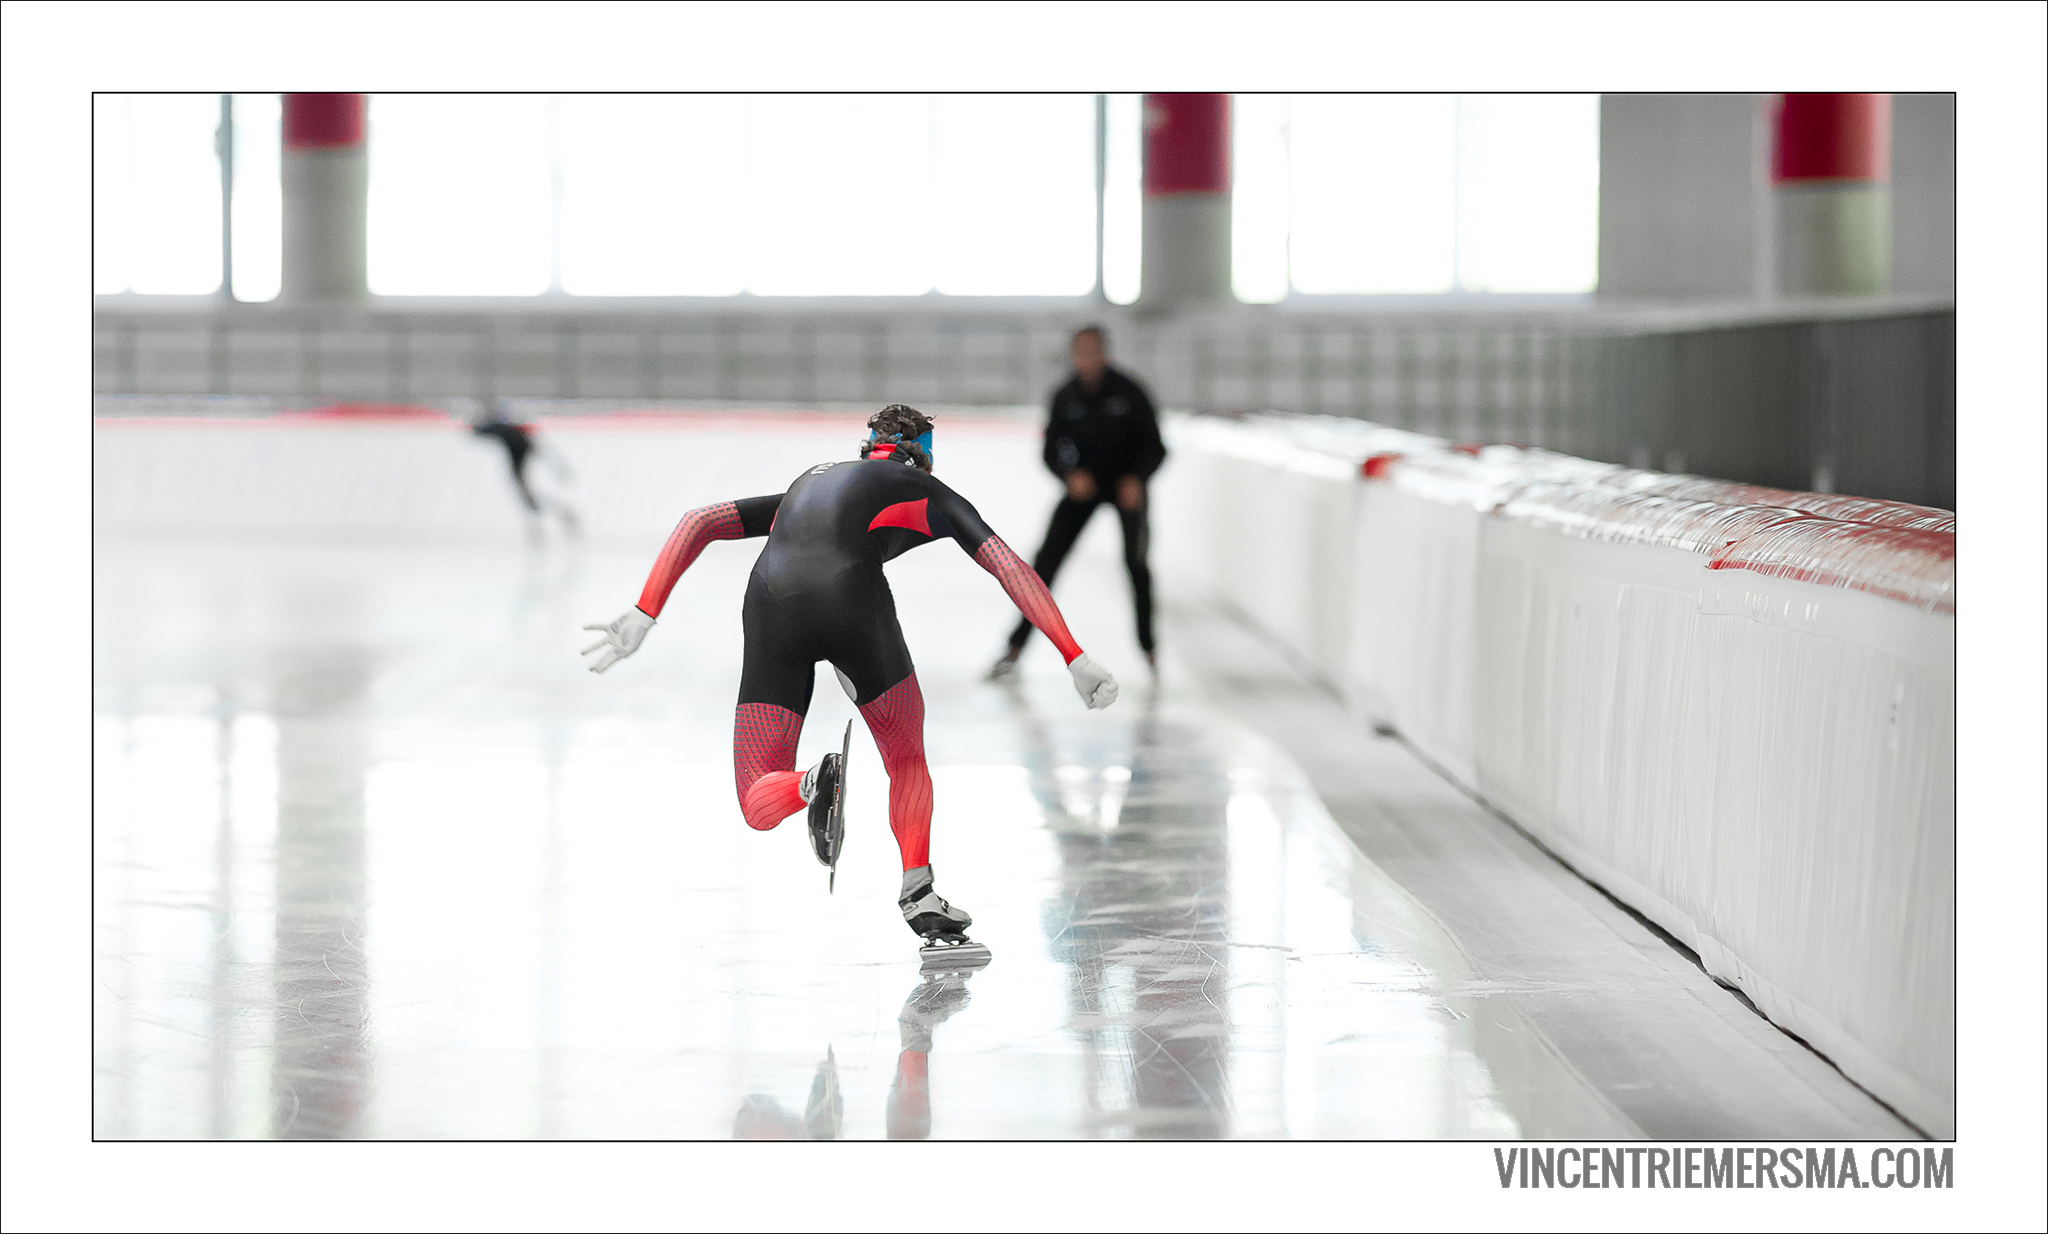 clafis-inzell_20890101122_o.jpg